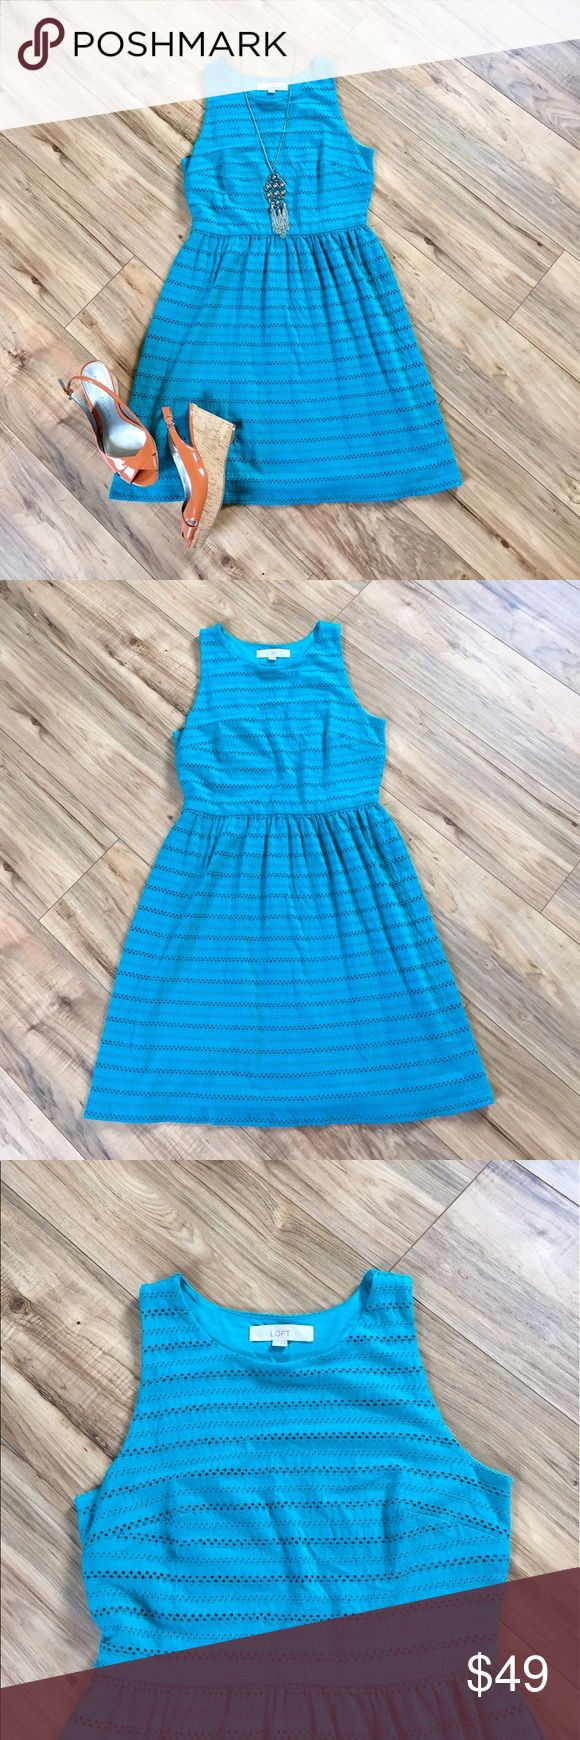 """NWOT Ann Taylor LOFT aqua blue sundress NWOT Ann Taylor LOFT aqua blue soft eyelet sundress. Sleeveless design. Fully lined. Shell is 99% cotton / 1% spandex and lining is 100% polyester. Machine washable. It's so comfortable! Approximately 36"""" from shoulder to hem and 14"""" waist (laid flat). LOFT Dresses Midi"""